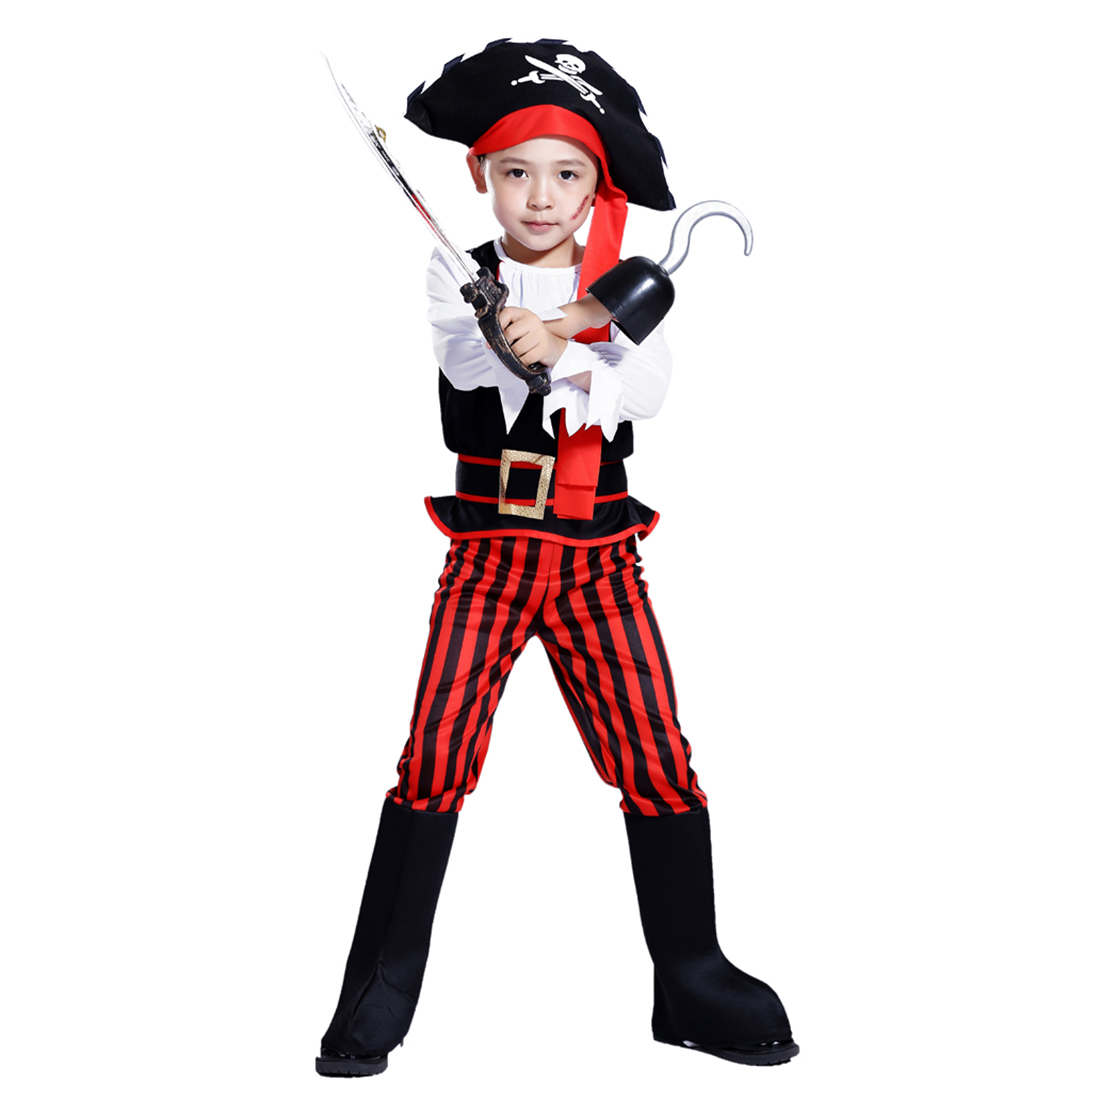 Halloween Pirate Cosplay Suit Children Pirate Boy Costume With Pirate Knife Pirate Hook For 4-6 Years Old - M Size